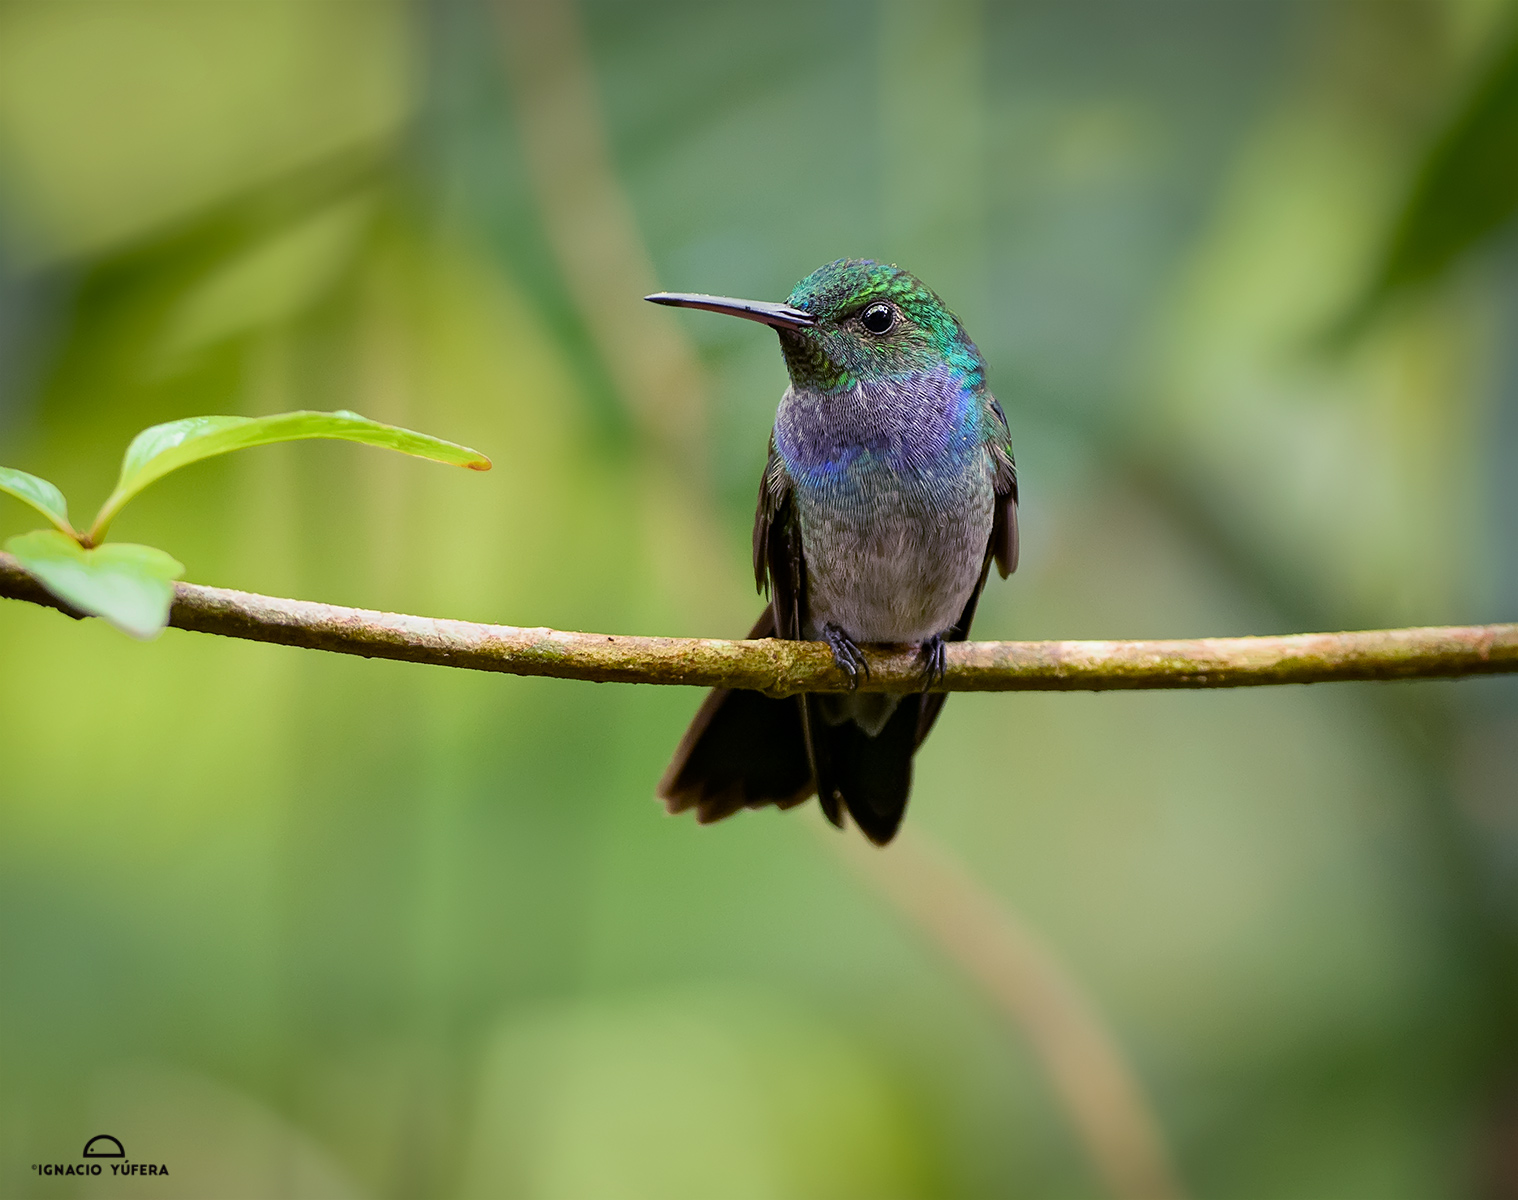 Blue-chested Hummingbird (Amazilia amabilis), Gamboa, Panama